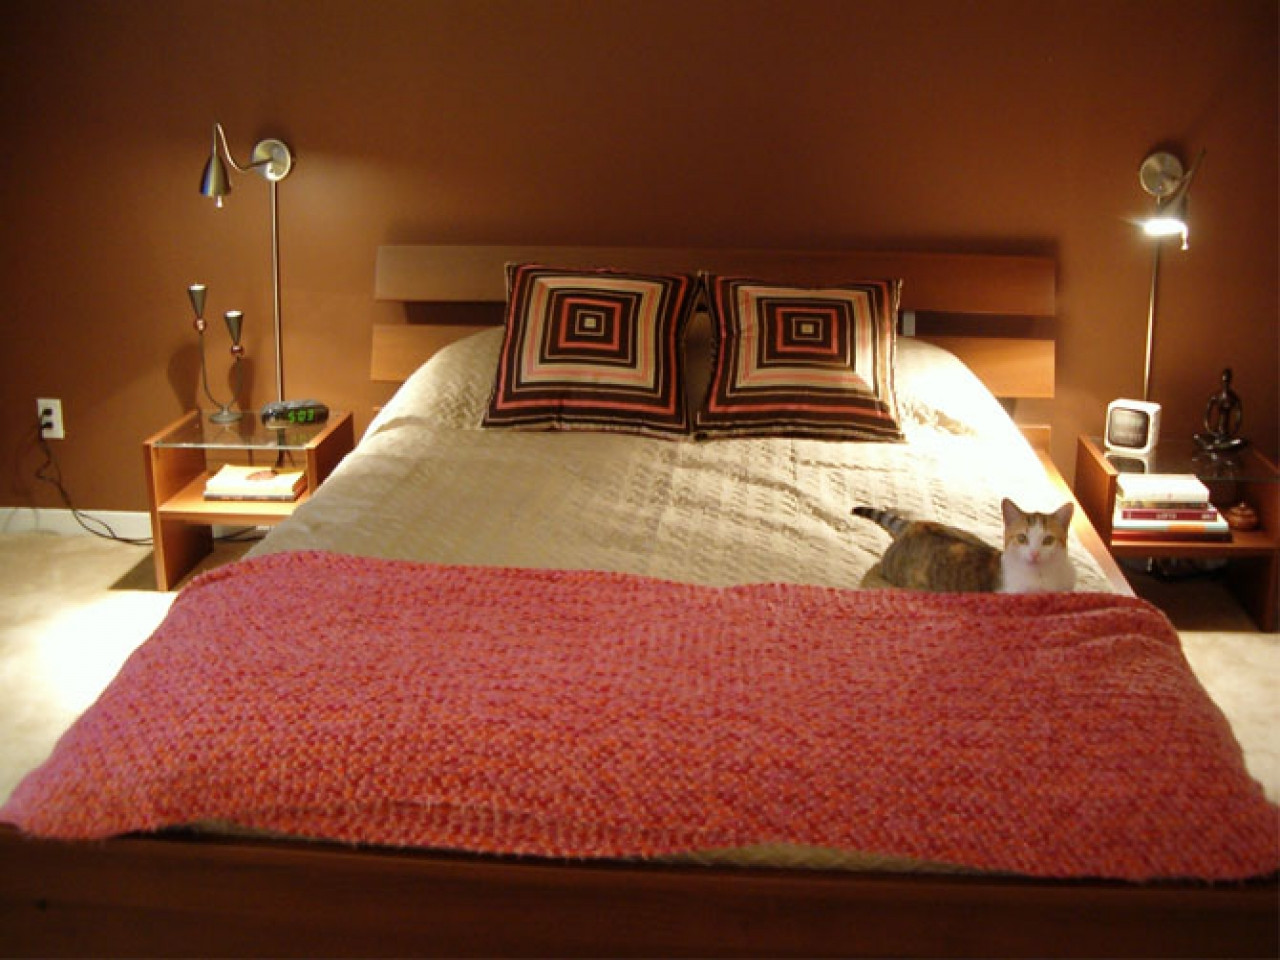 Best ideas about Bedroom Paint Color Ideas . Save or Pin Feng shui for dining room calming bedroom paint colors Now.